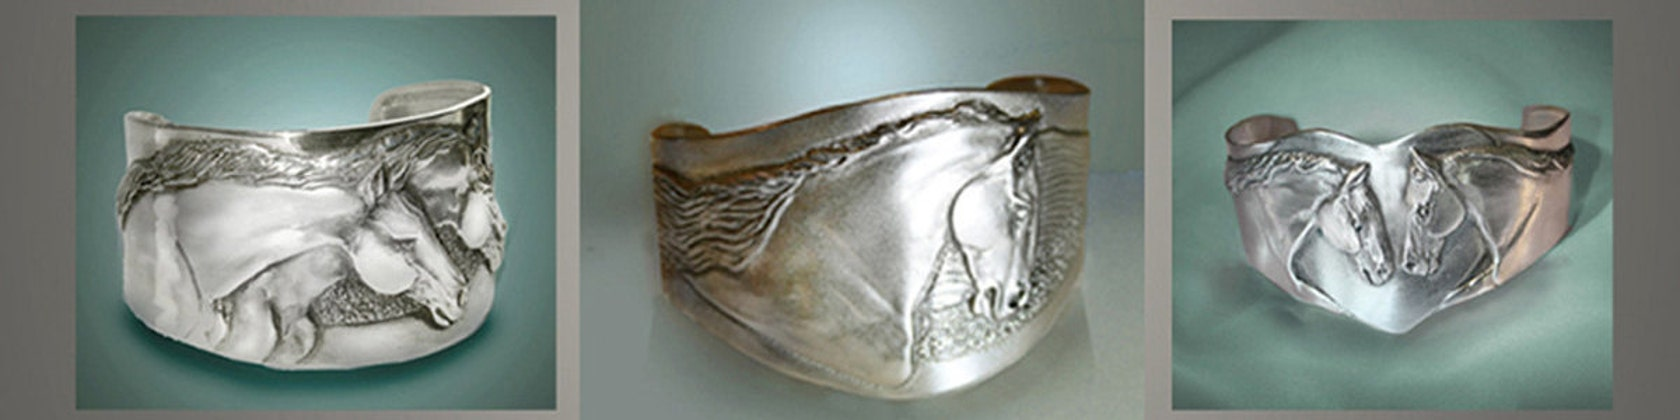 Horse Lady Jewelry By Horseladygifts On Etsy - 1680×420